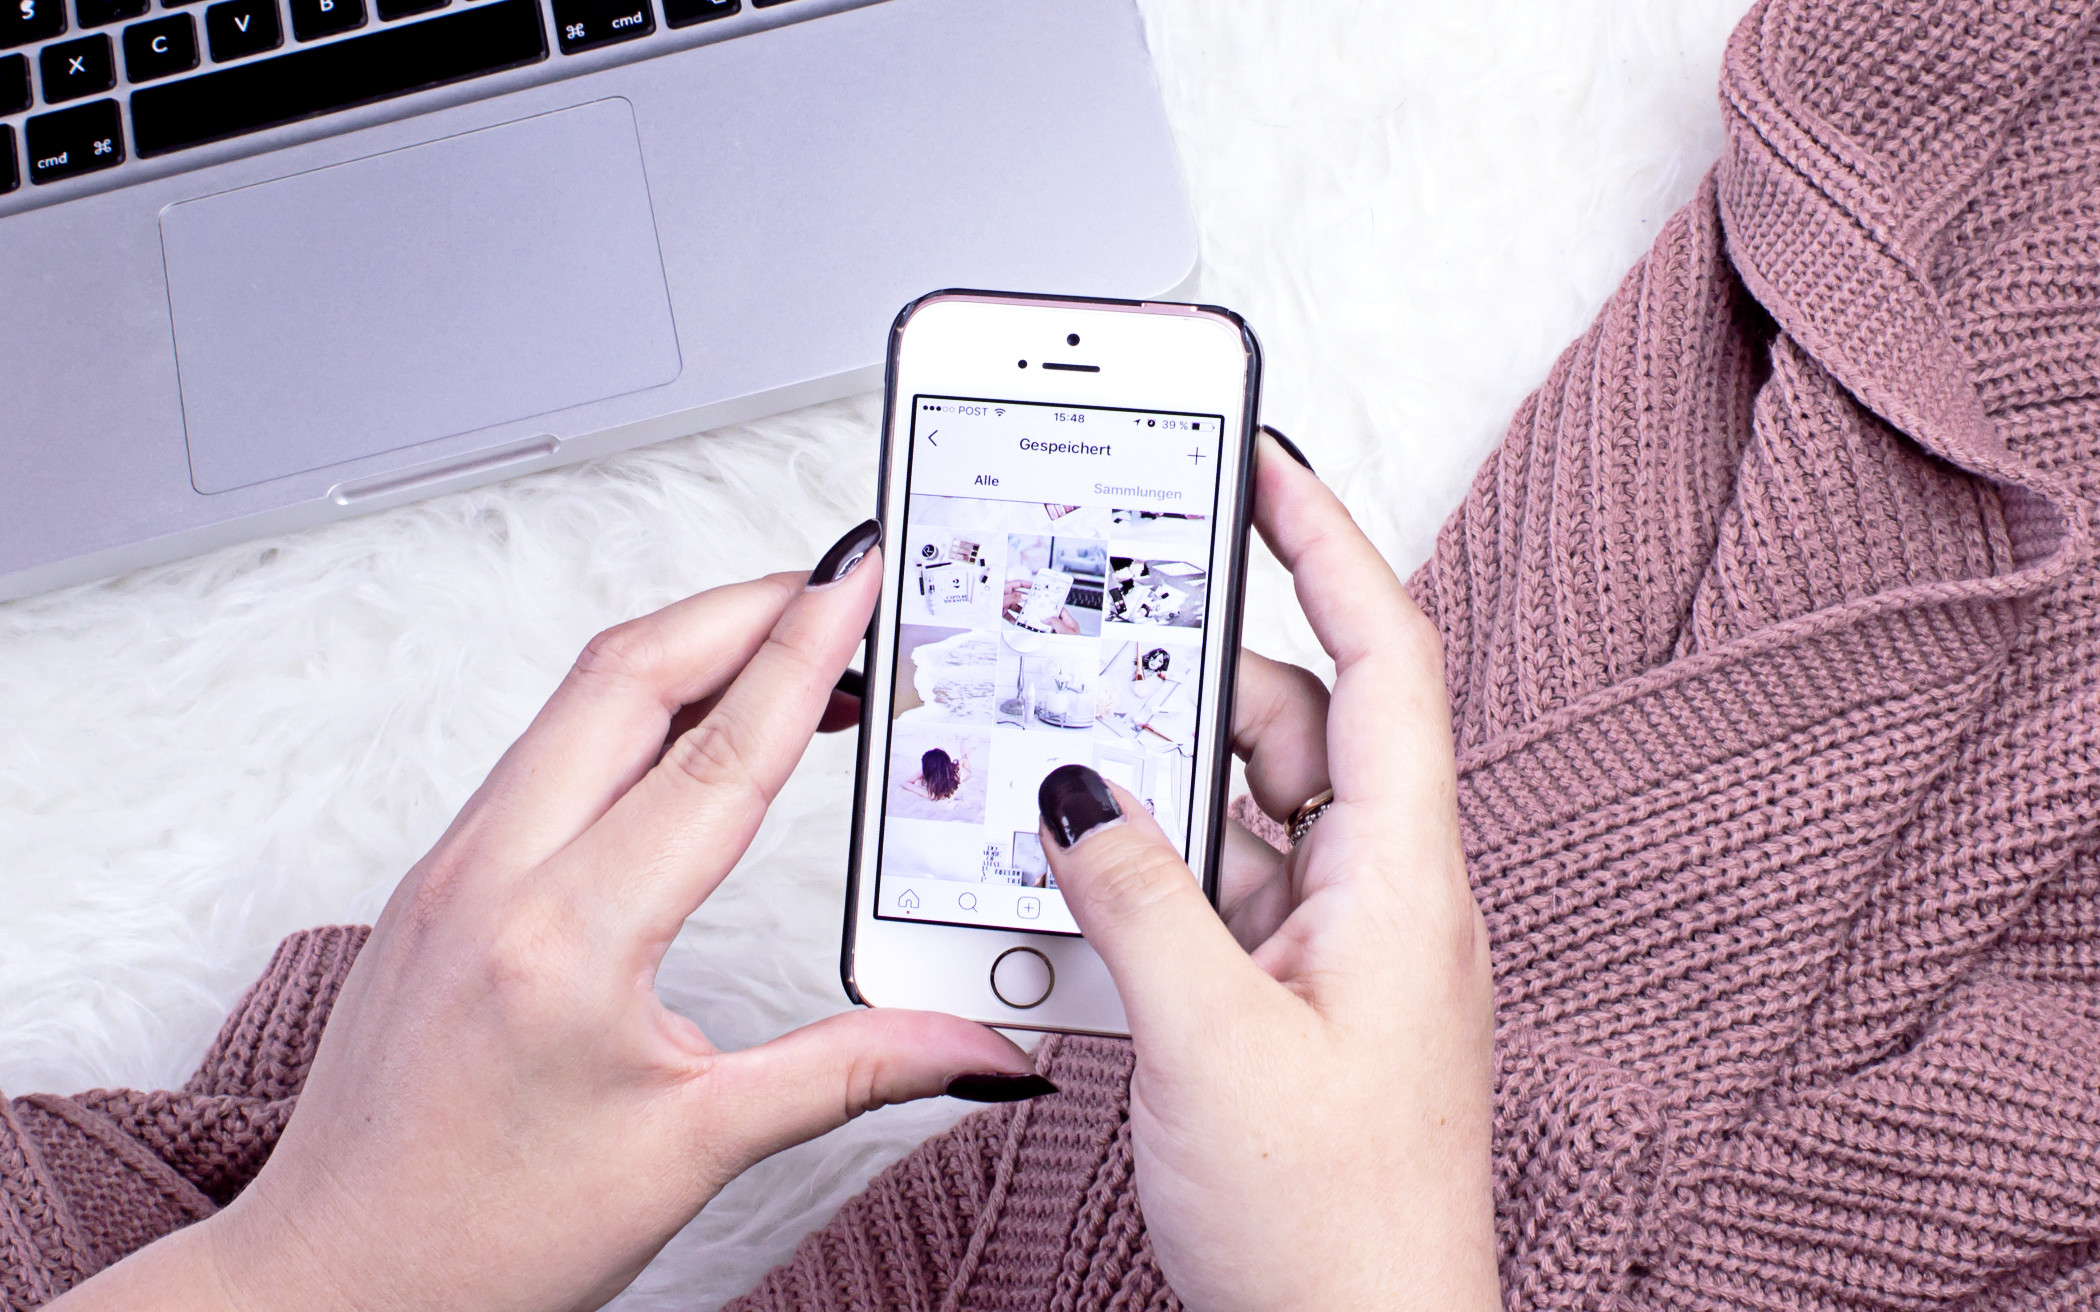 missesviolet-socialmedia-how-to-improve-your-instagram-feed-tipps-instagram-bildbearbeitung